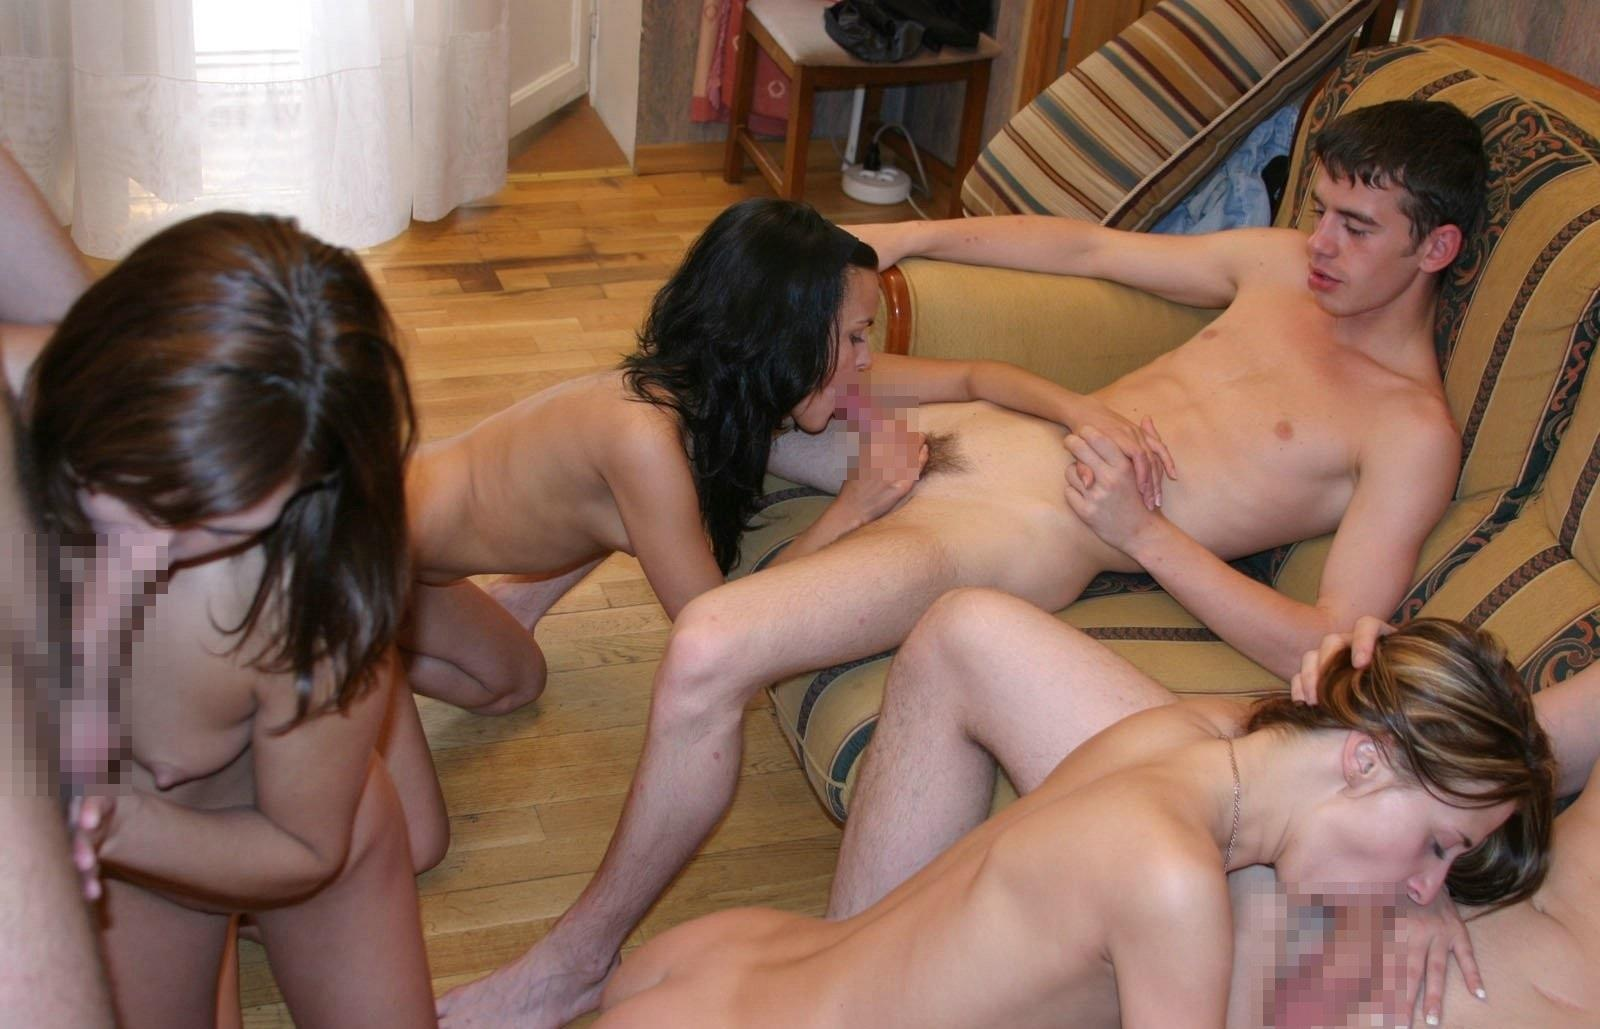 Russian Student Orgy High Quality Porn Photo